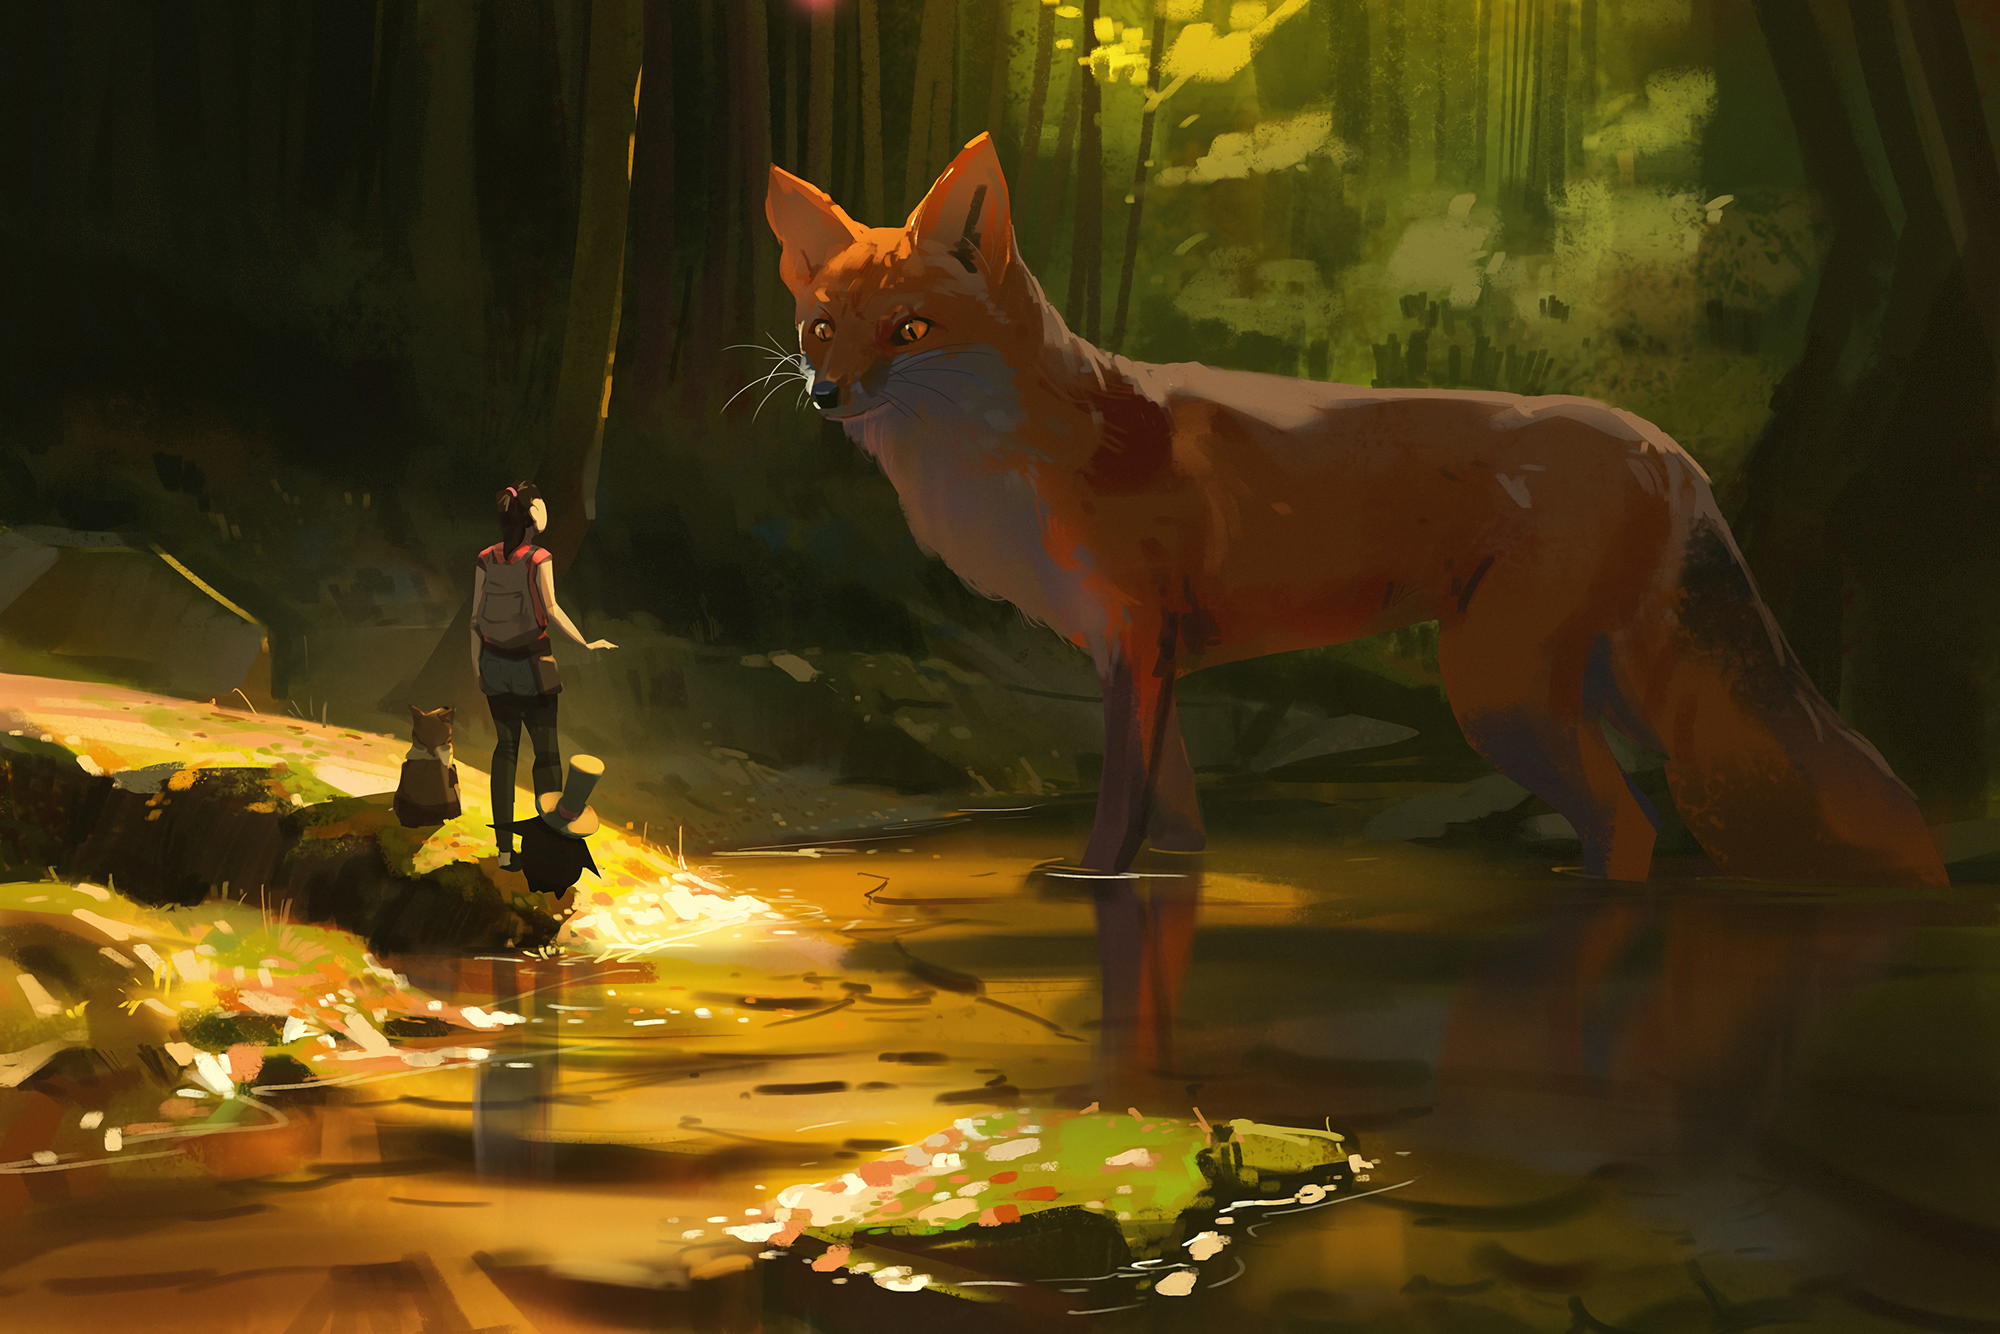 General 2000x1334 digital art artwork fantasy art Atey Ghailan animals forest swamp pond fox